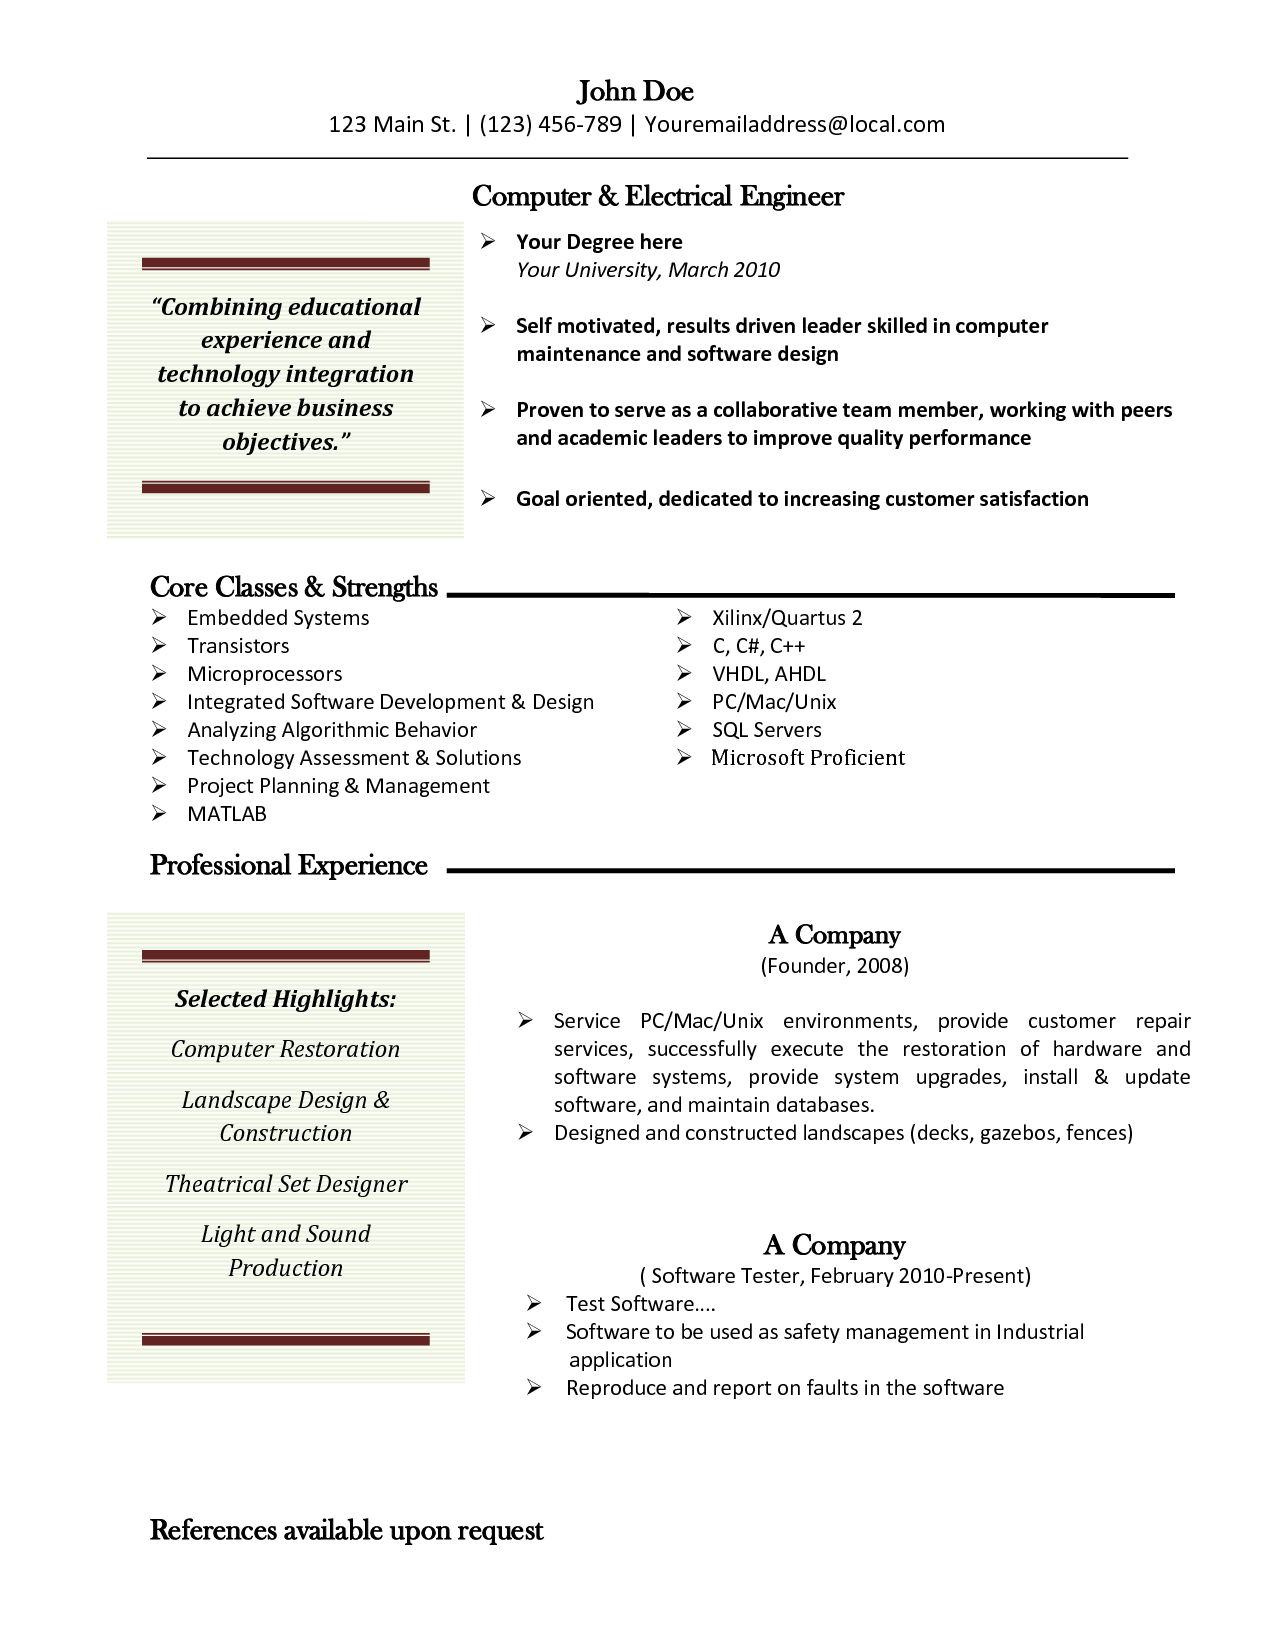 Free resume templates for mac cqjykibig 12751650 cv free resume templates for mac best templatefree resume templates cover letter examples alramifo Images